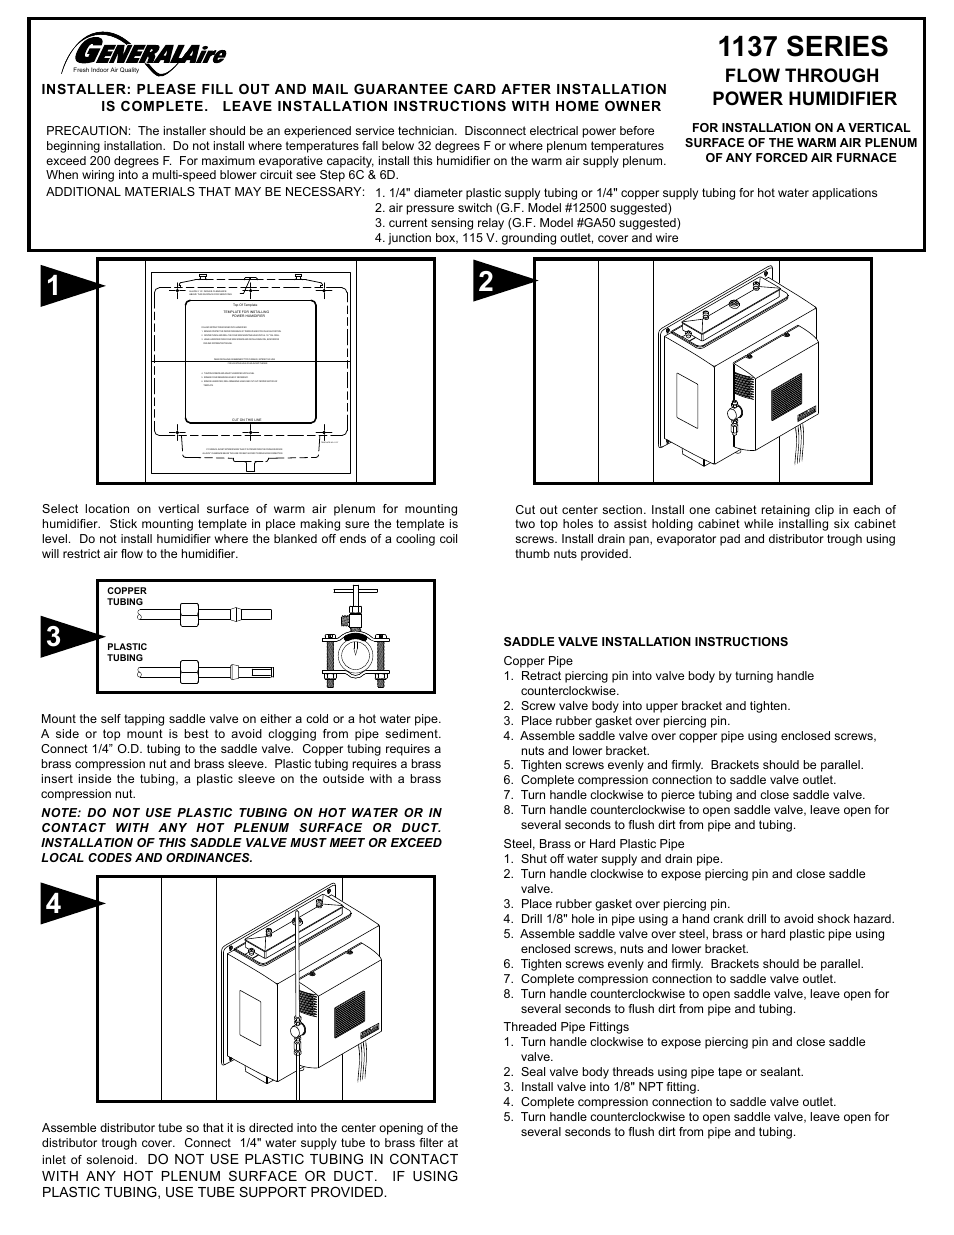 General 1137 Humidifier Wiring Diagram Start Building A Bryant Images Gallery